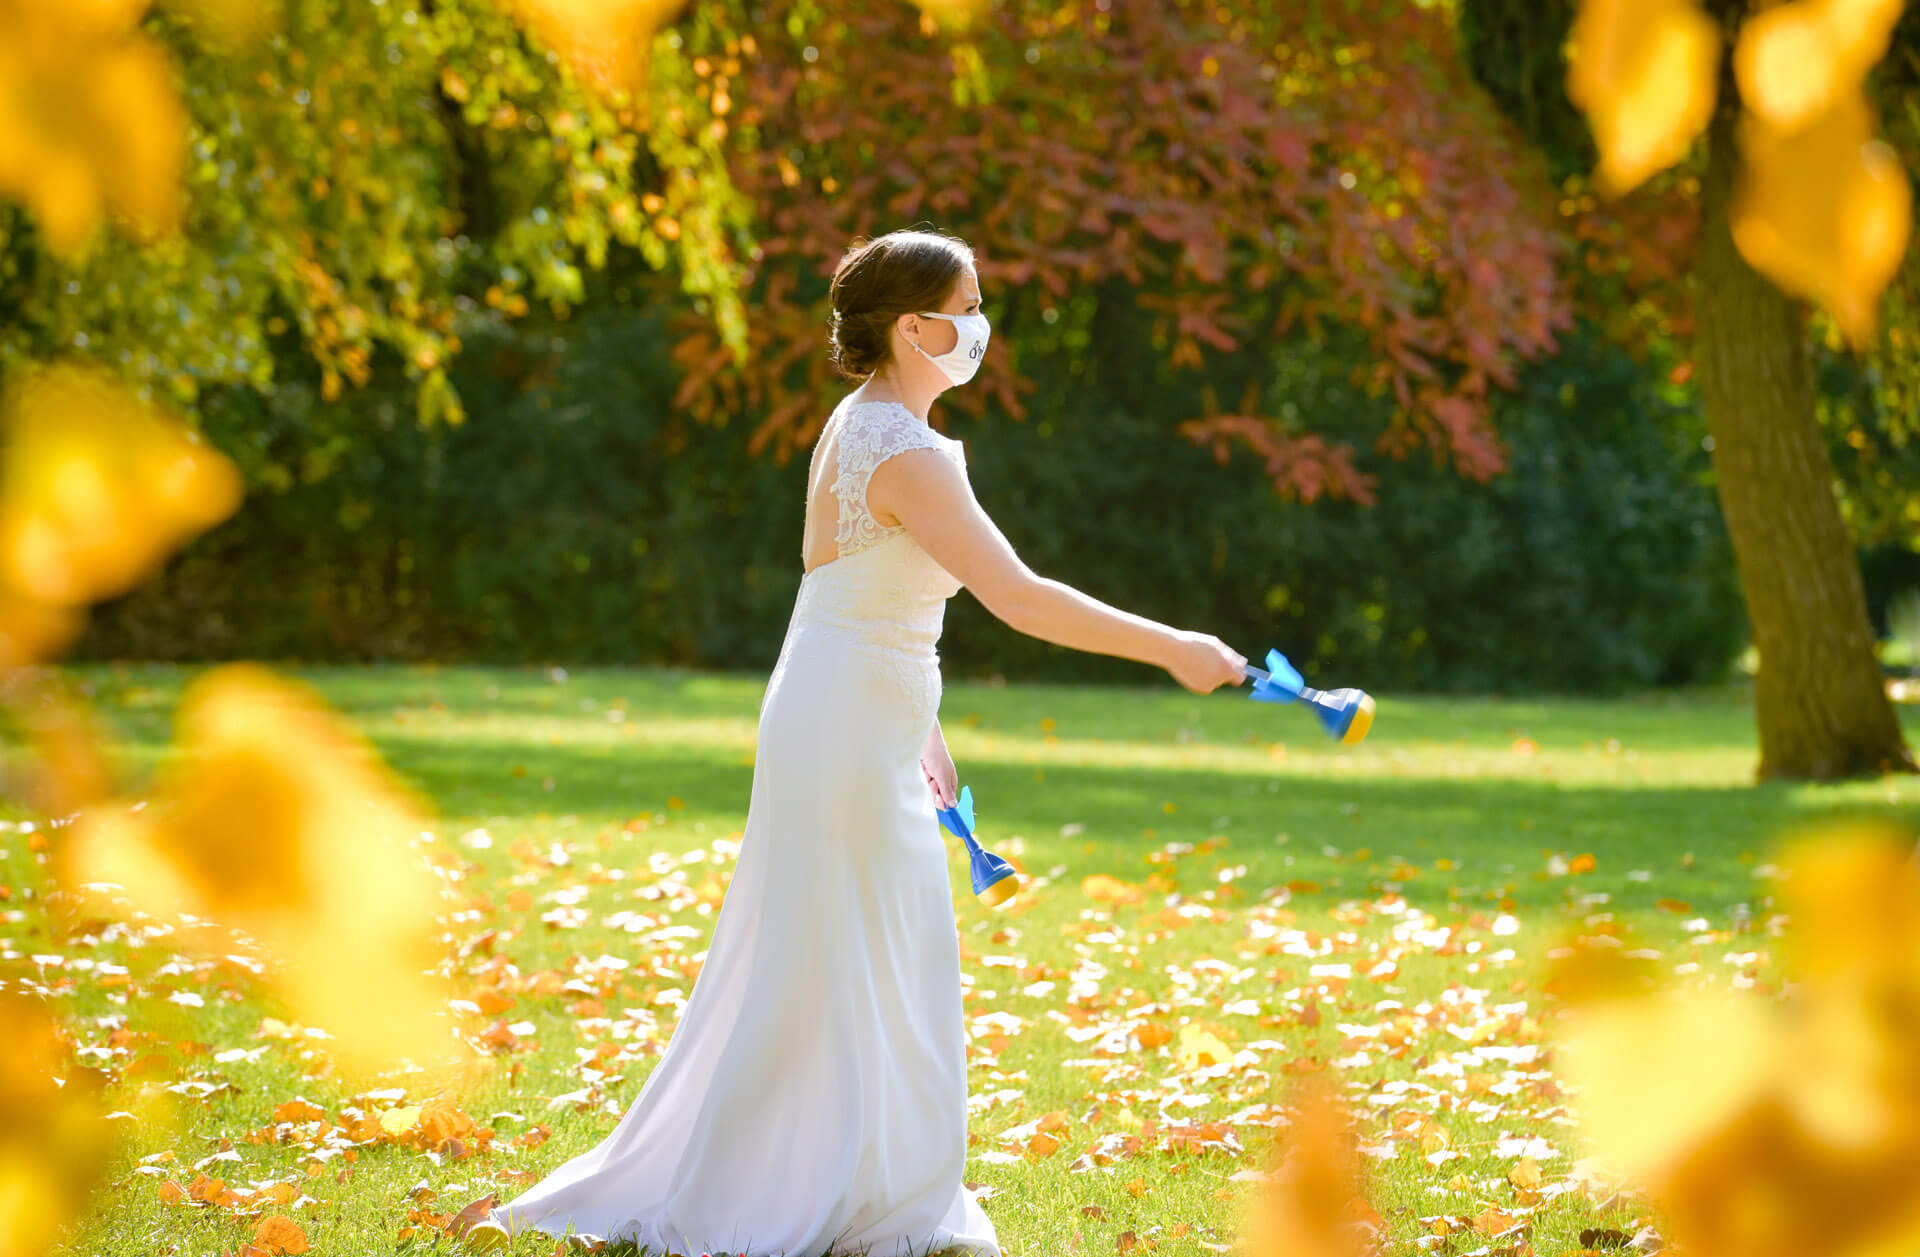 The bride plays lawn darts during her small family wedding at home in Farmington, Michigan during the pandemic.